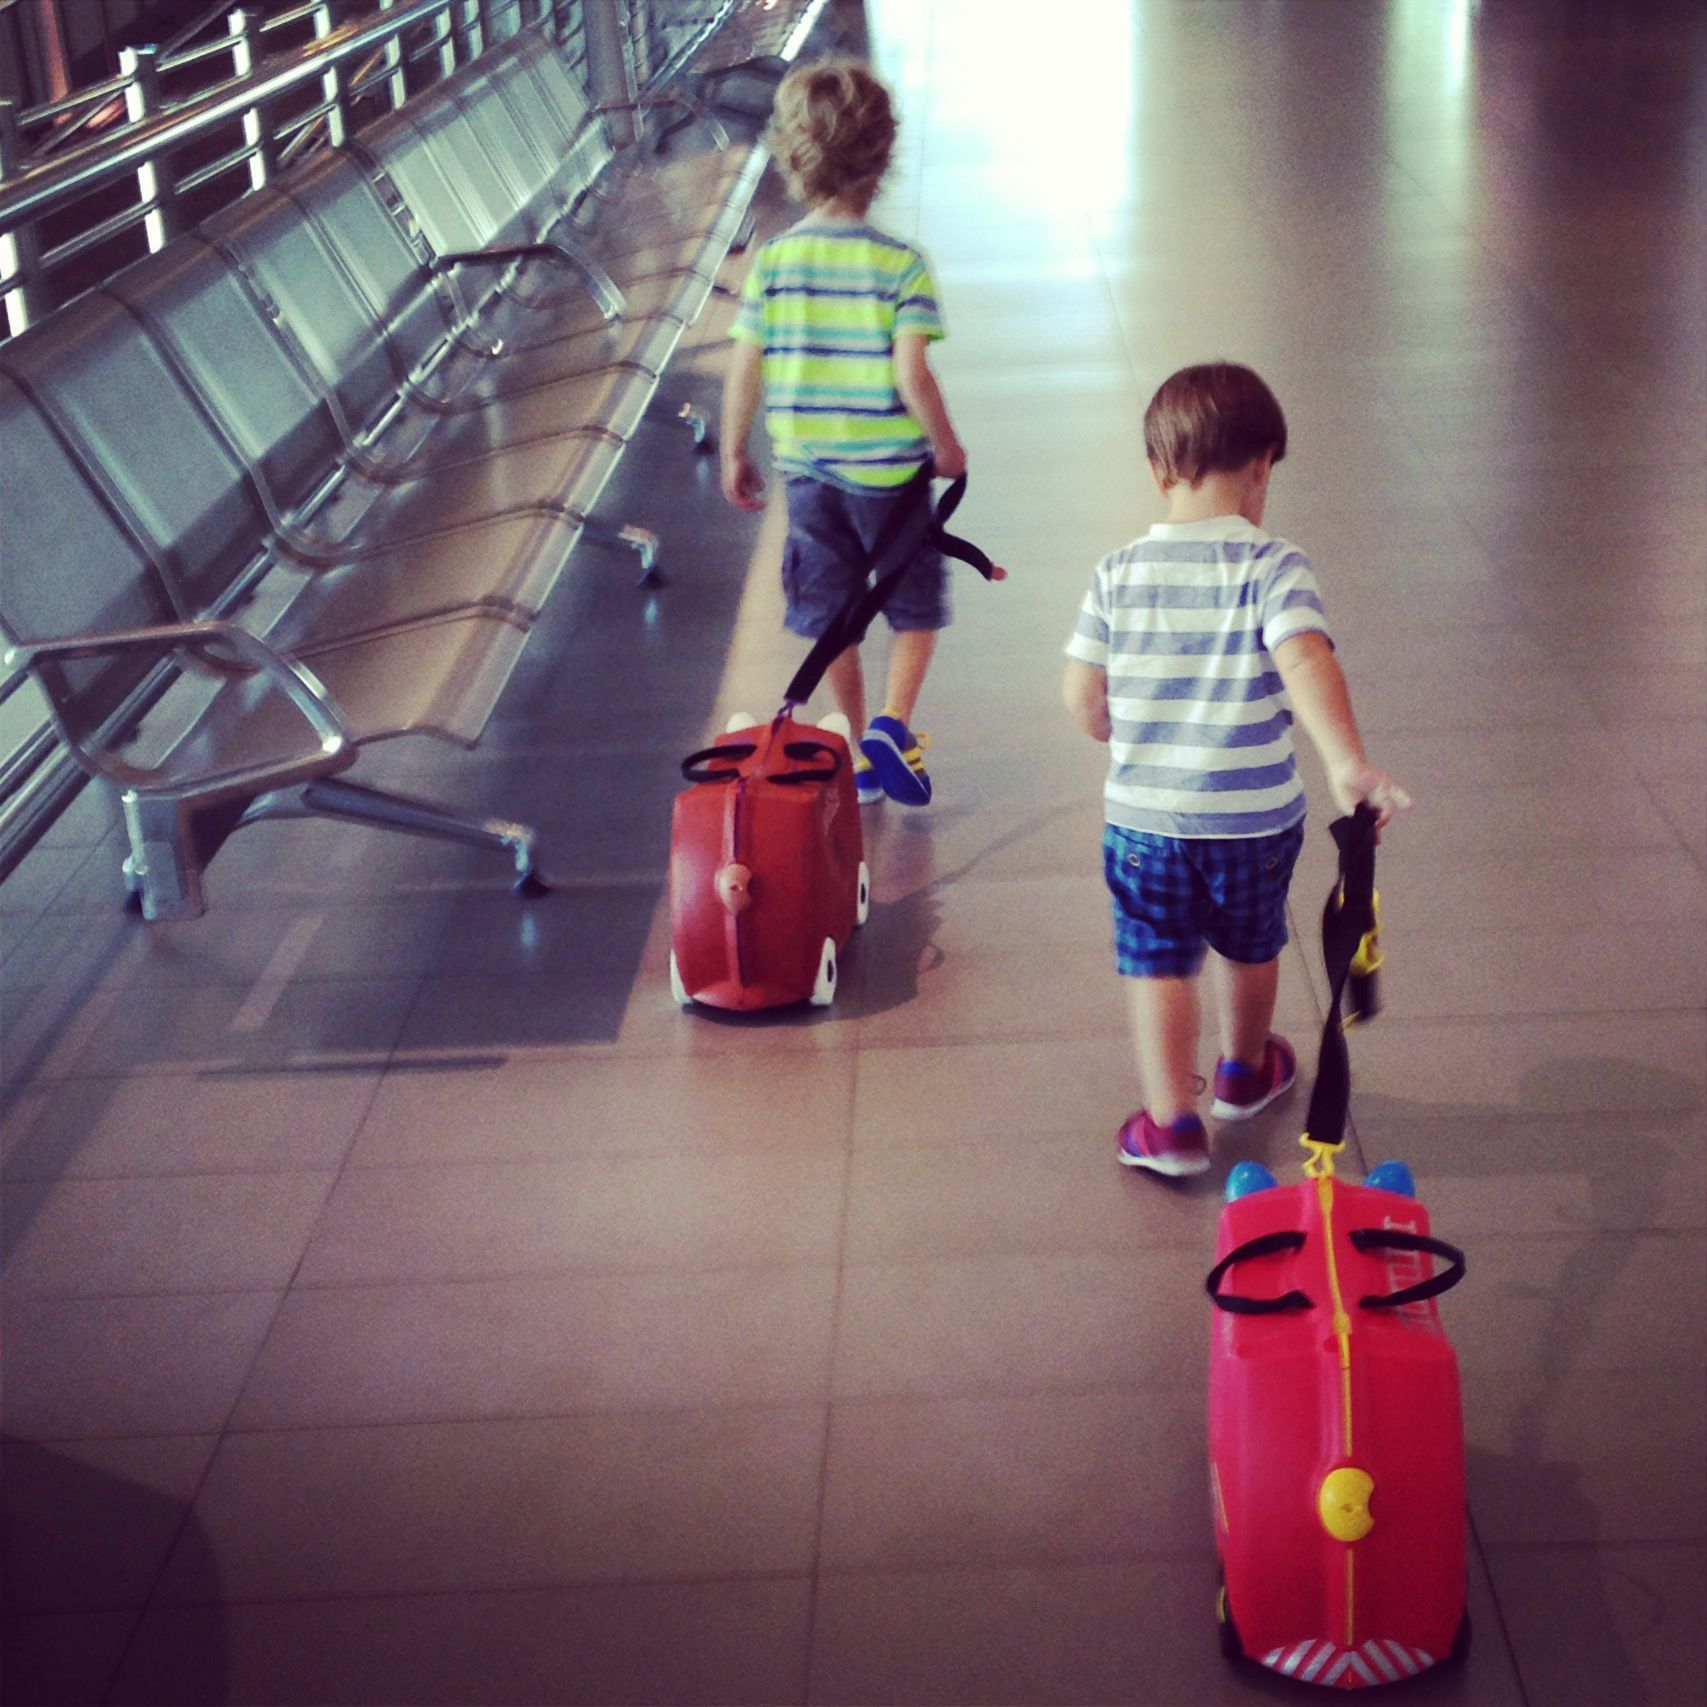 GLOBAL CITIZEN OR EXPAT BRAT? GROWING UP GLOBAL, WITHOUT THE BAGGAGE